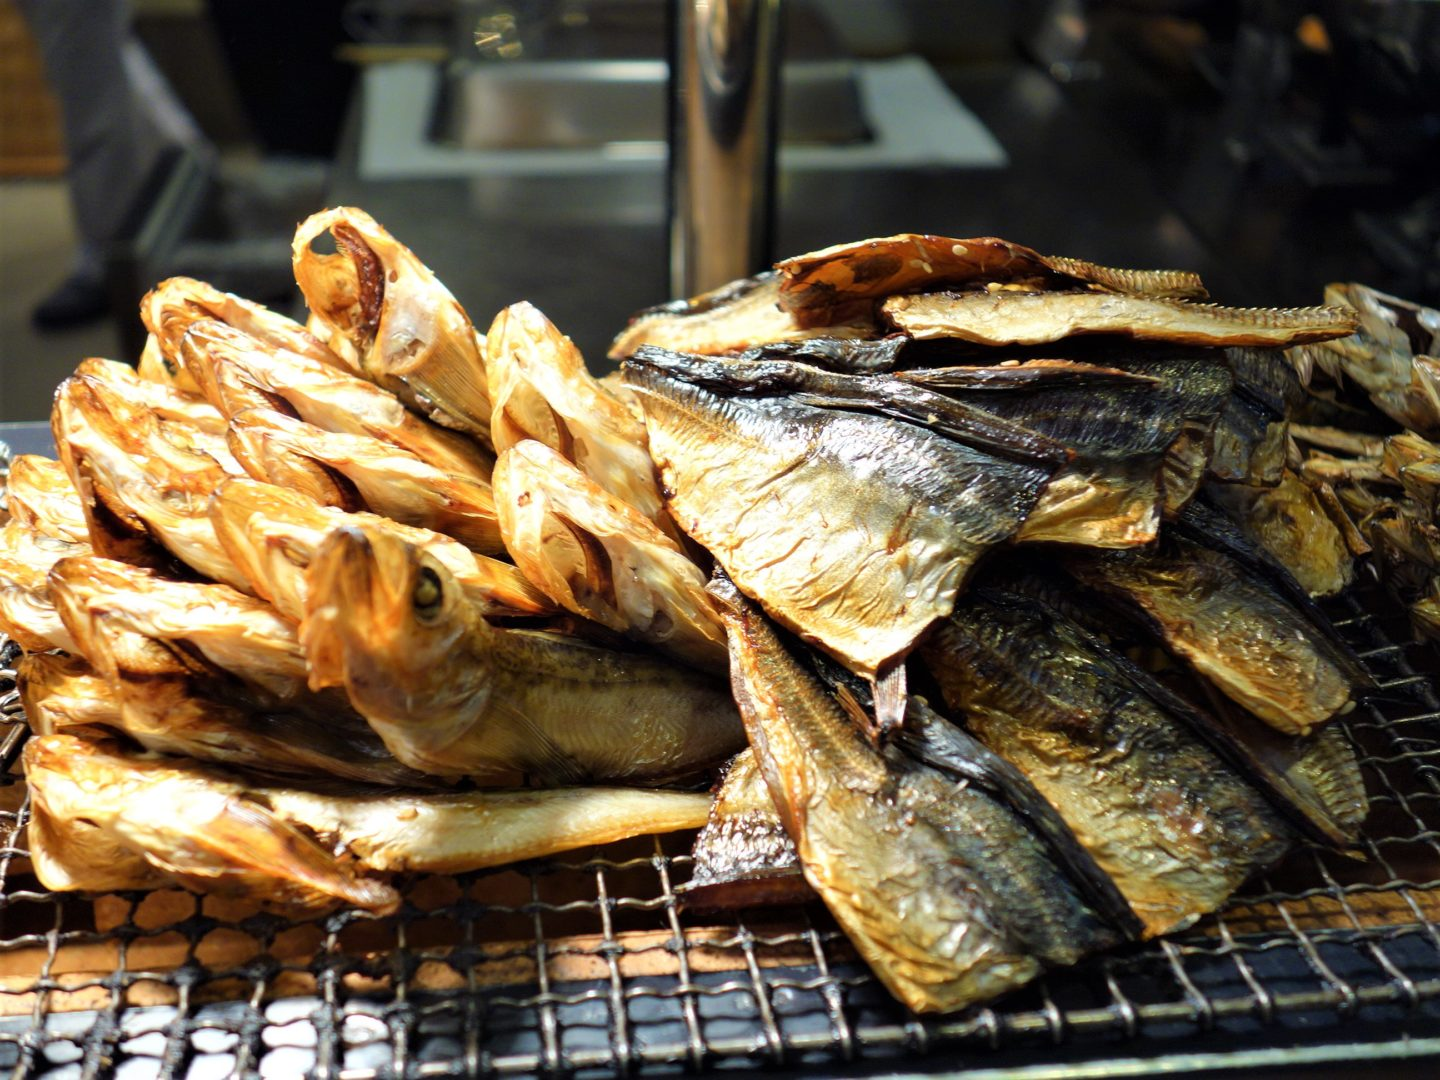 Dried fish served at breakfast